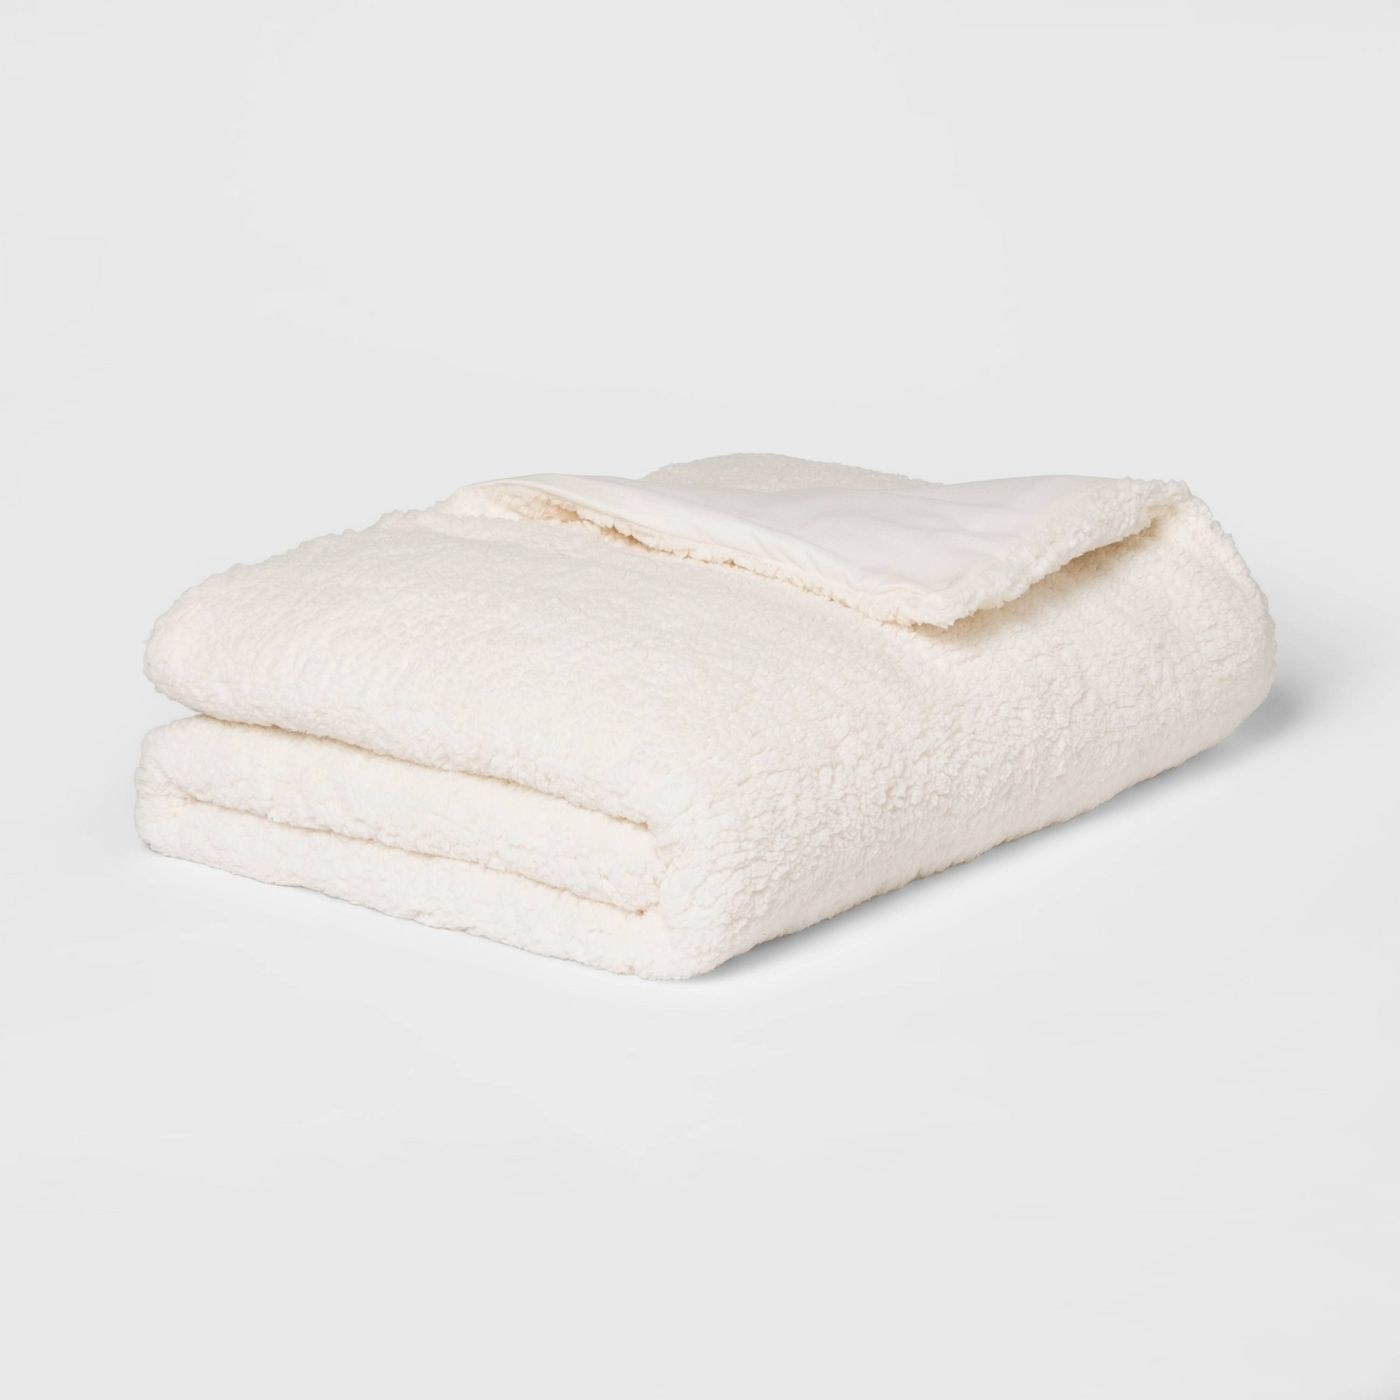 The ivory sherpa weighted blanket